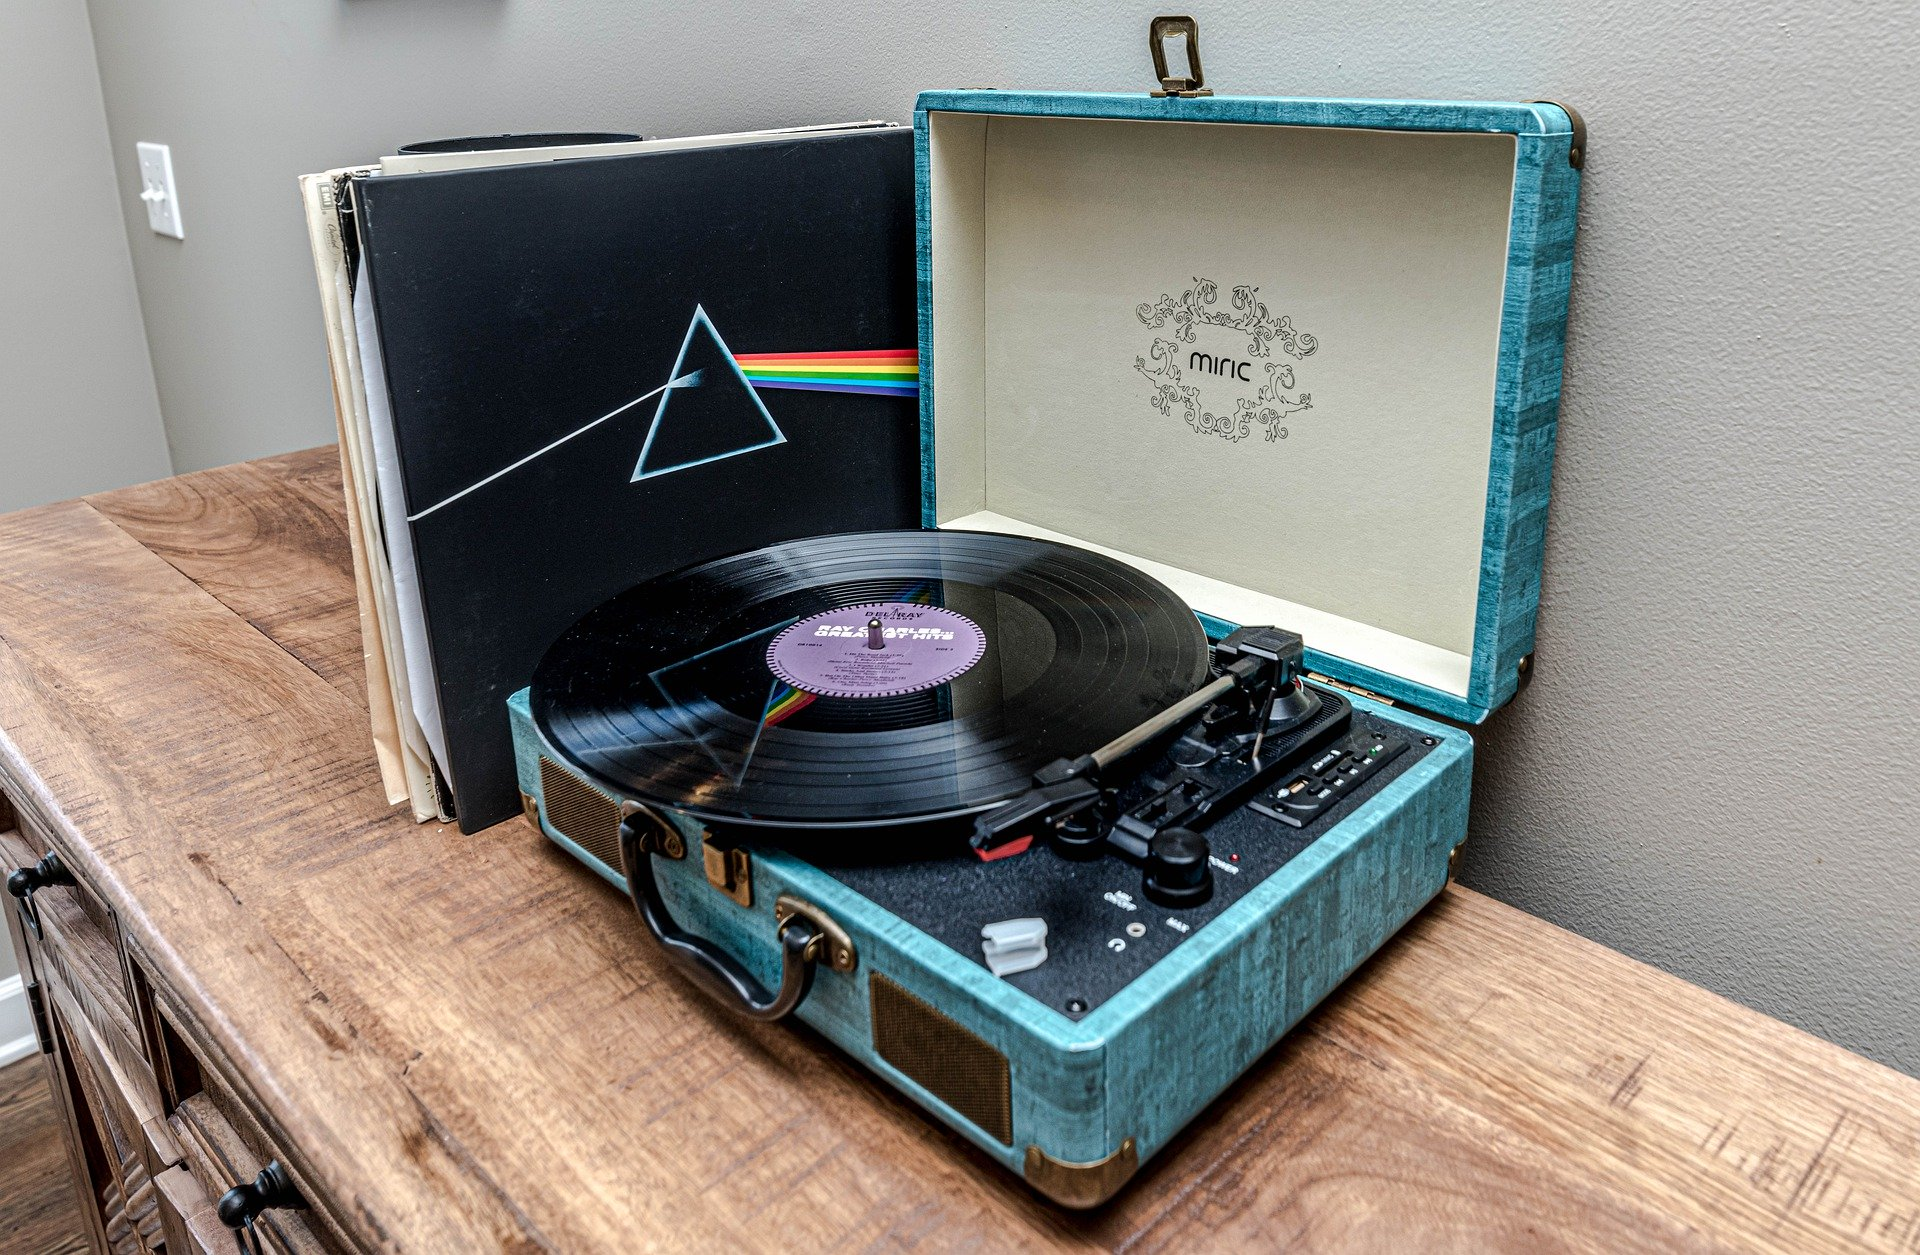 Record player image by Mike Gattorna from Pixabay